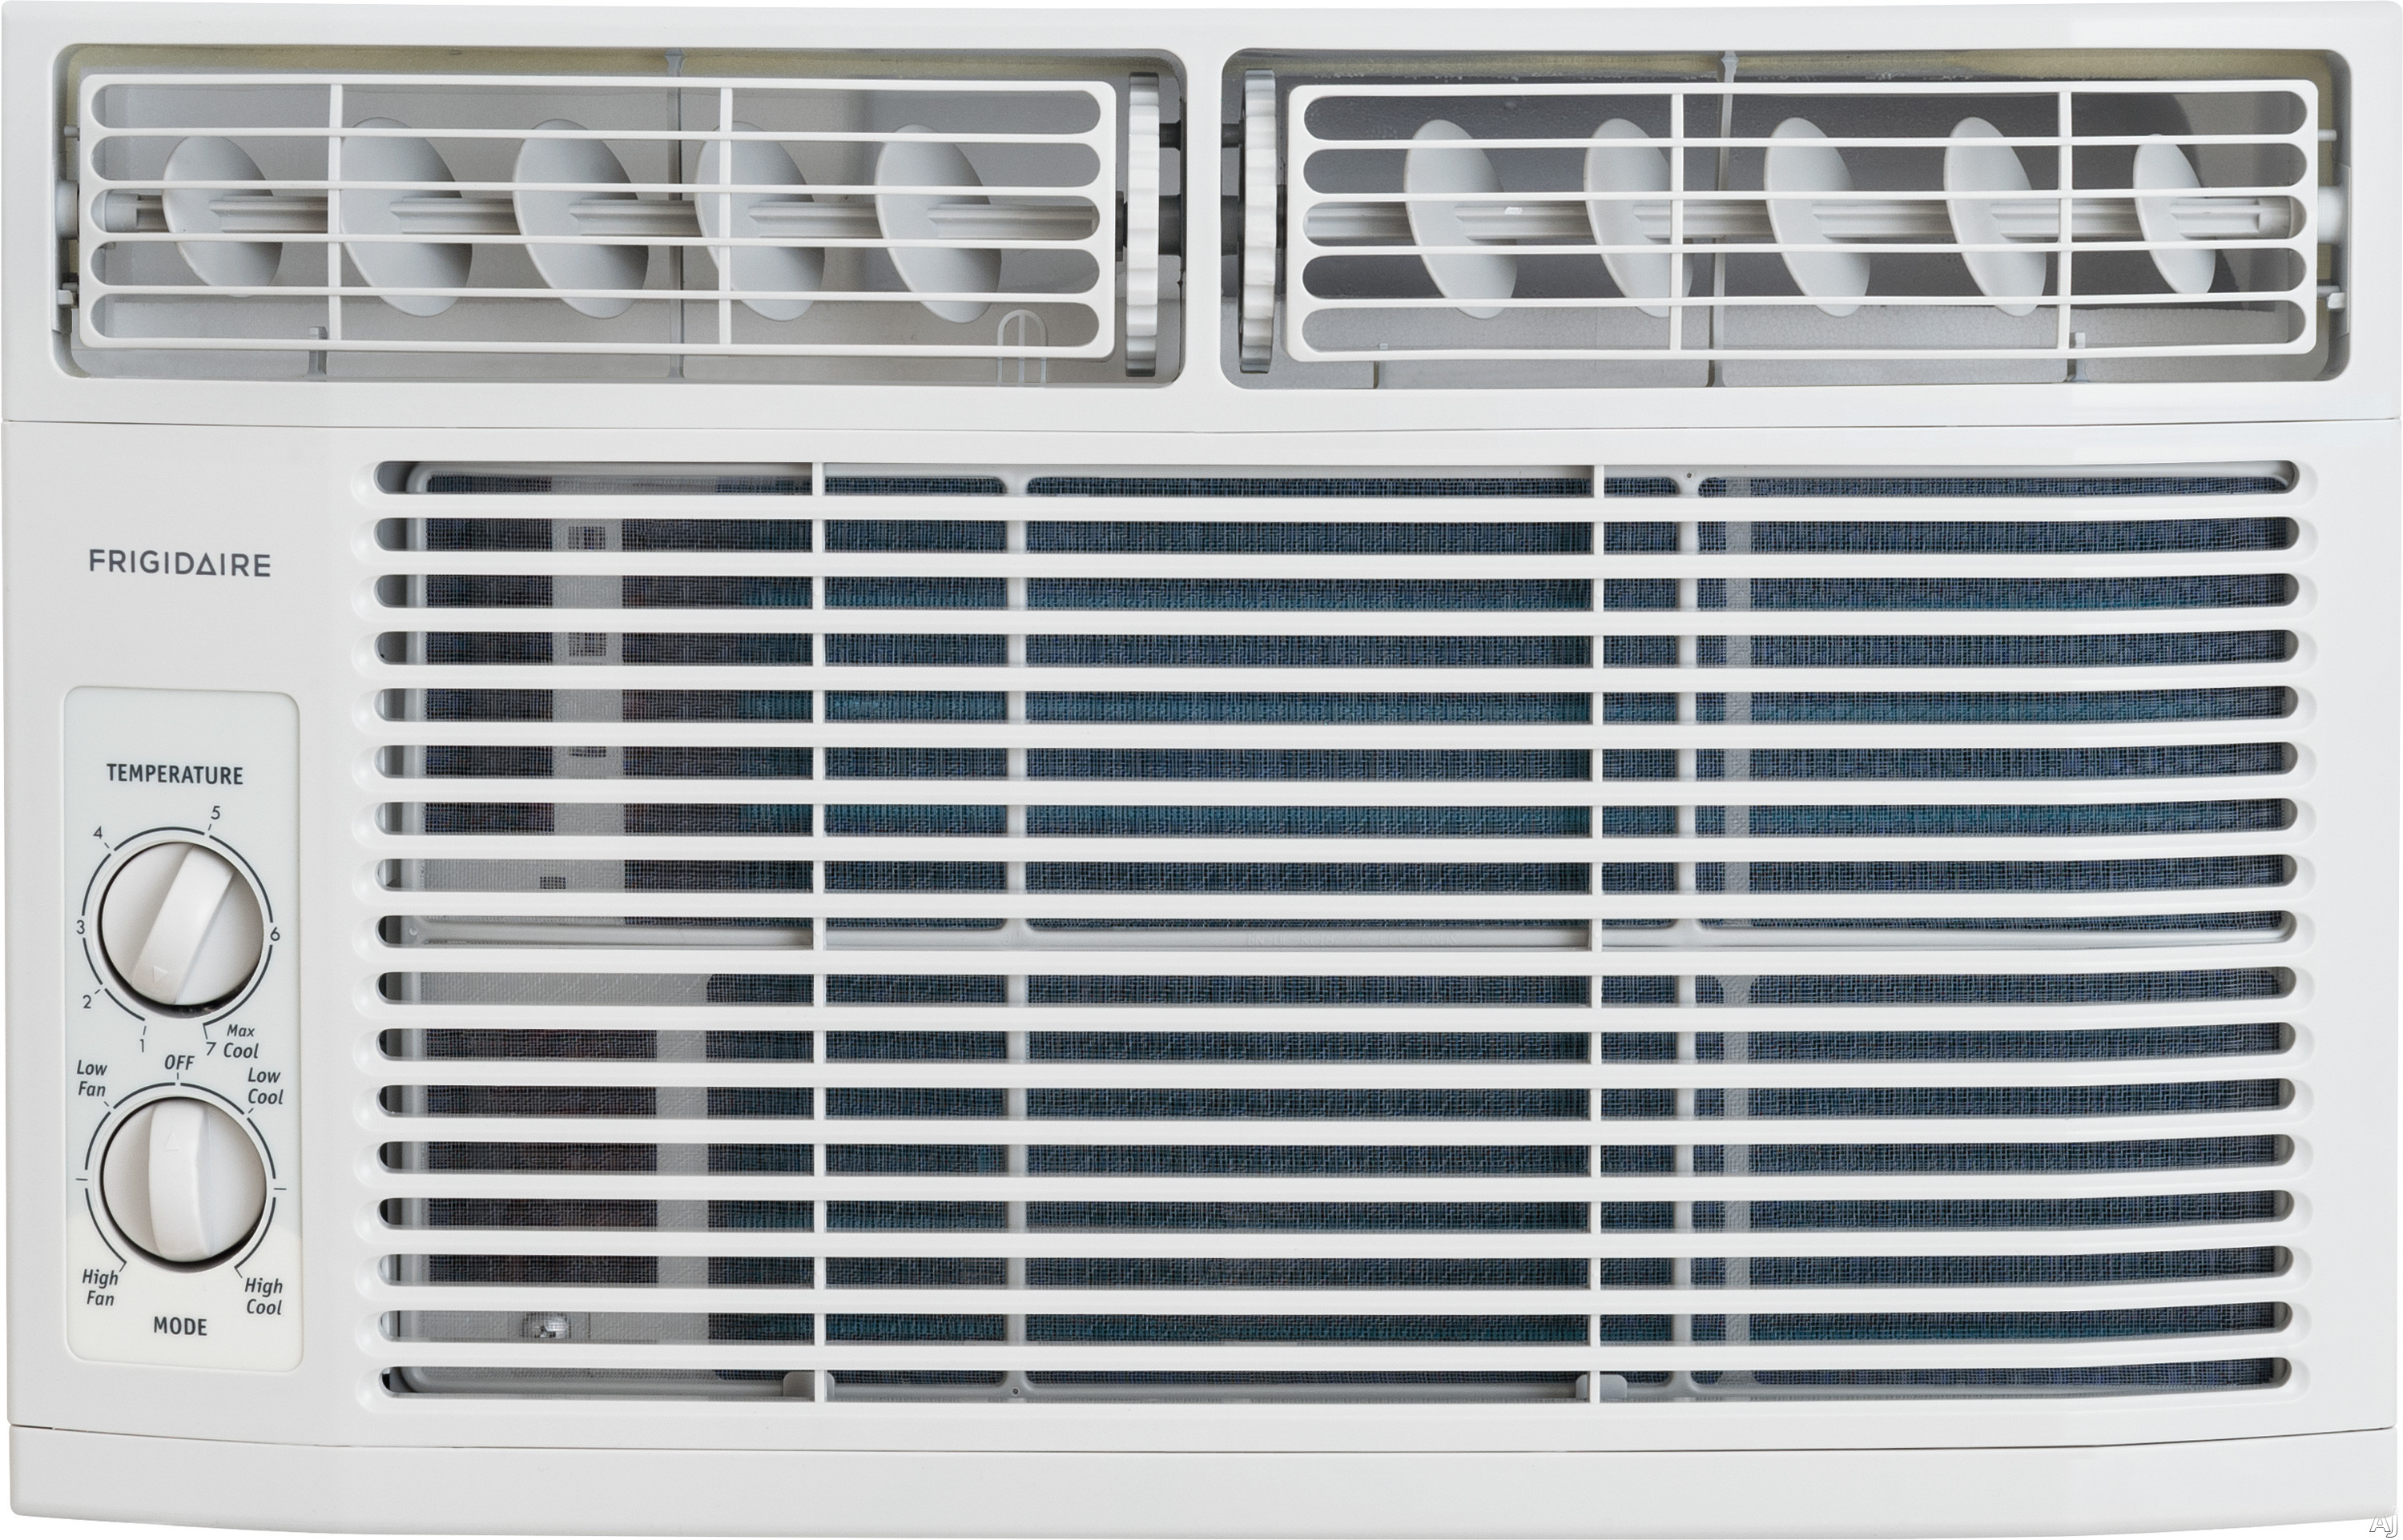 Frigidaire FFRA0611R1 6,000 BTU Window Air Conditioner with 11.0 EER, R-410A Refrigerant, 1.3 Pts/Hr Dehumidification, 250 sq. ft. Cooling Area, 2 Fan Speeds and Mechanical Controls FFRA0611R1